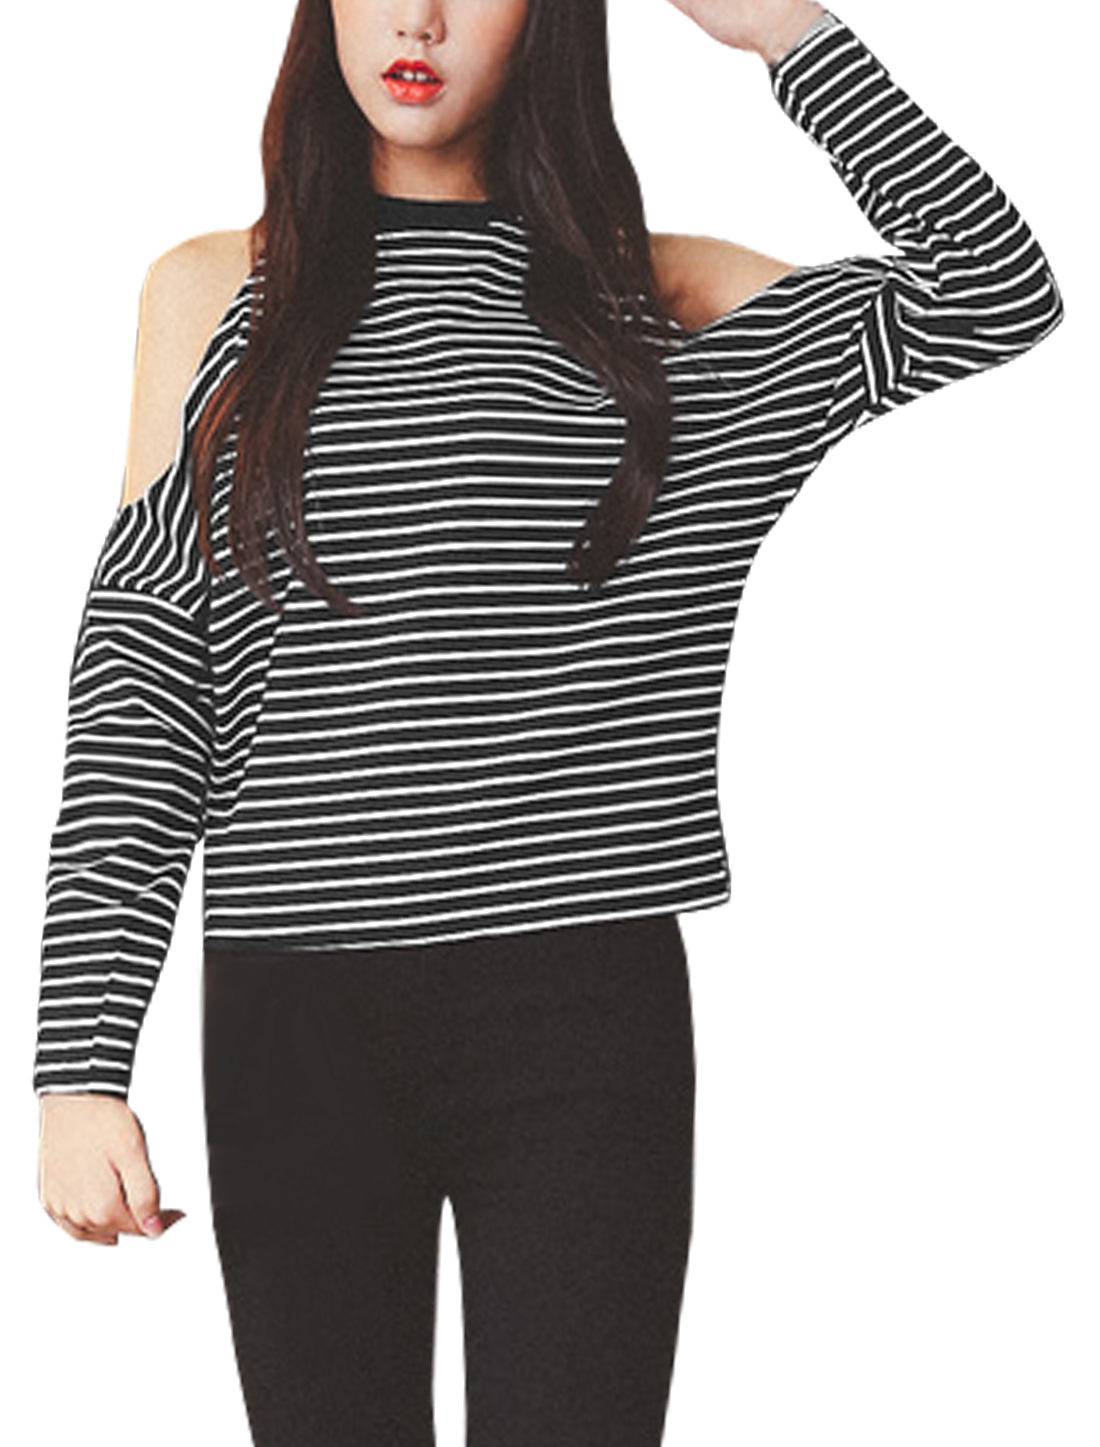 Women Cut Out Shoulder Dolman Stripes Top Black XS